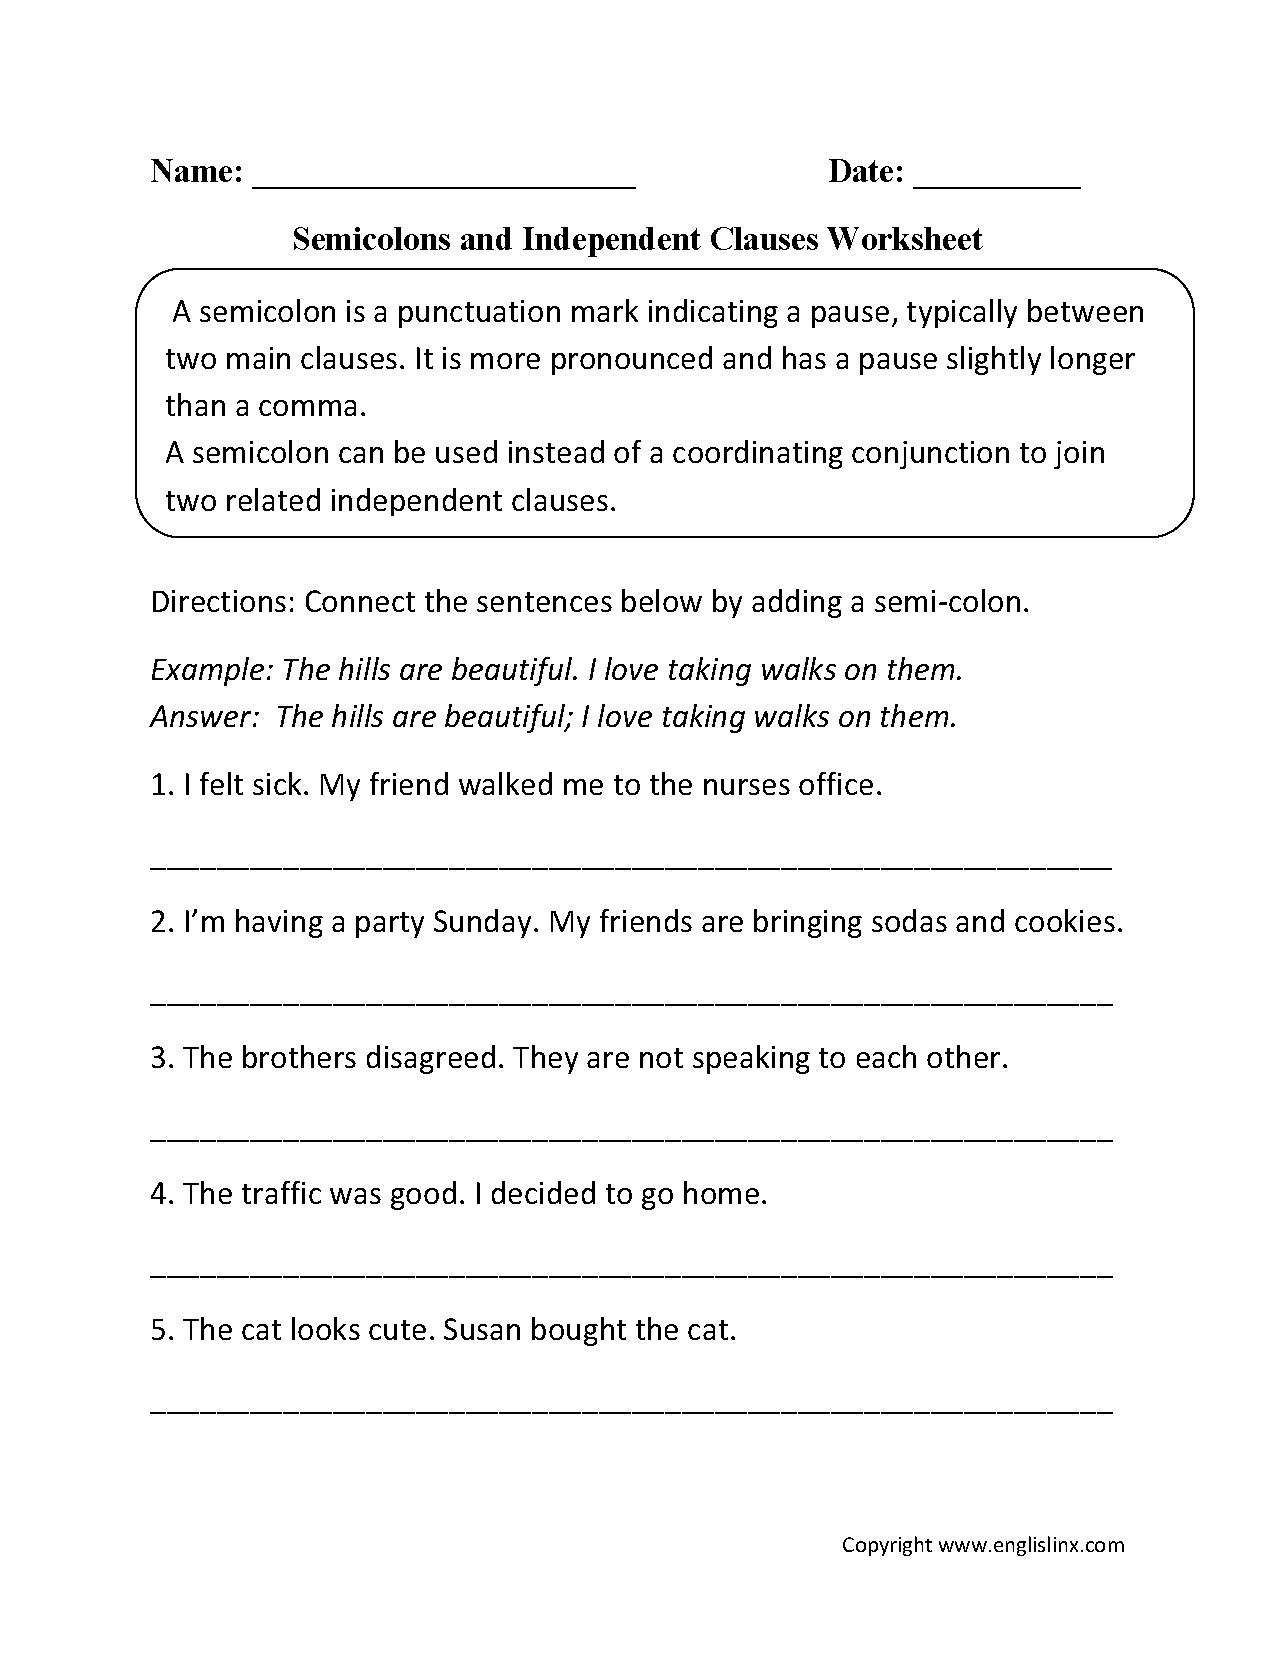 Worksheets Colon Worksheet punctuation worksheets semicolon clause worksheet